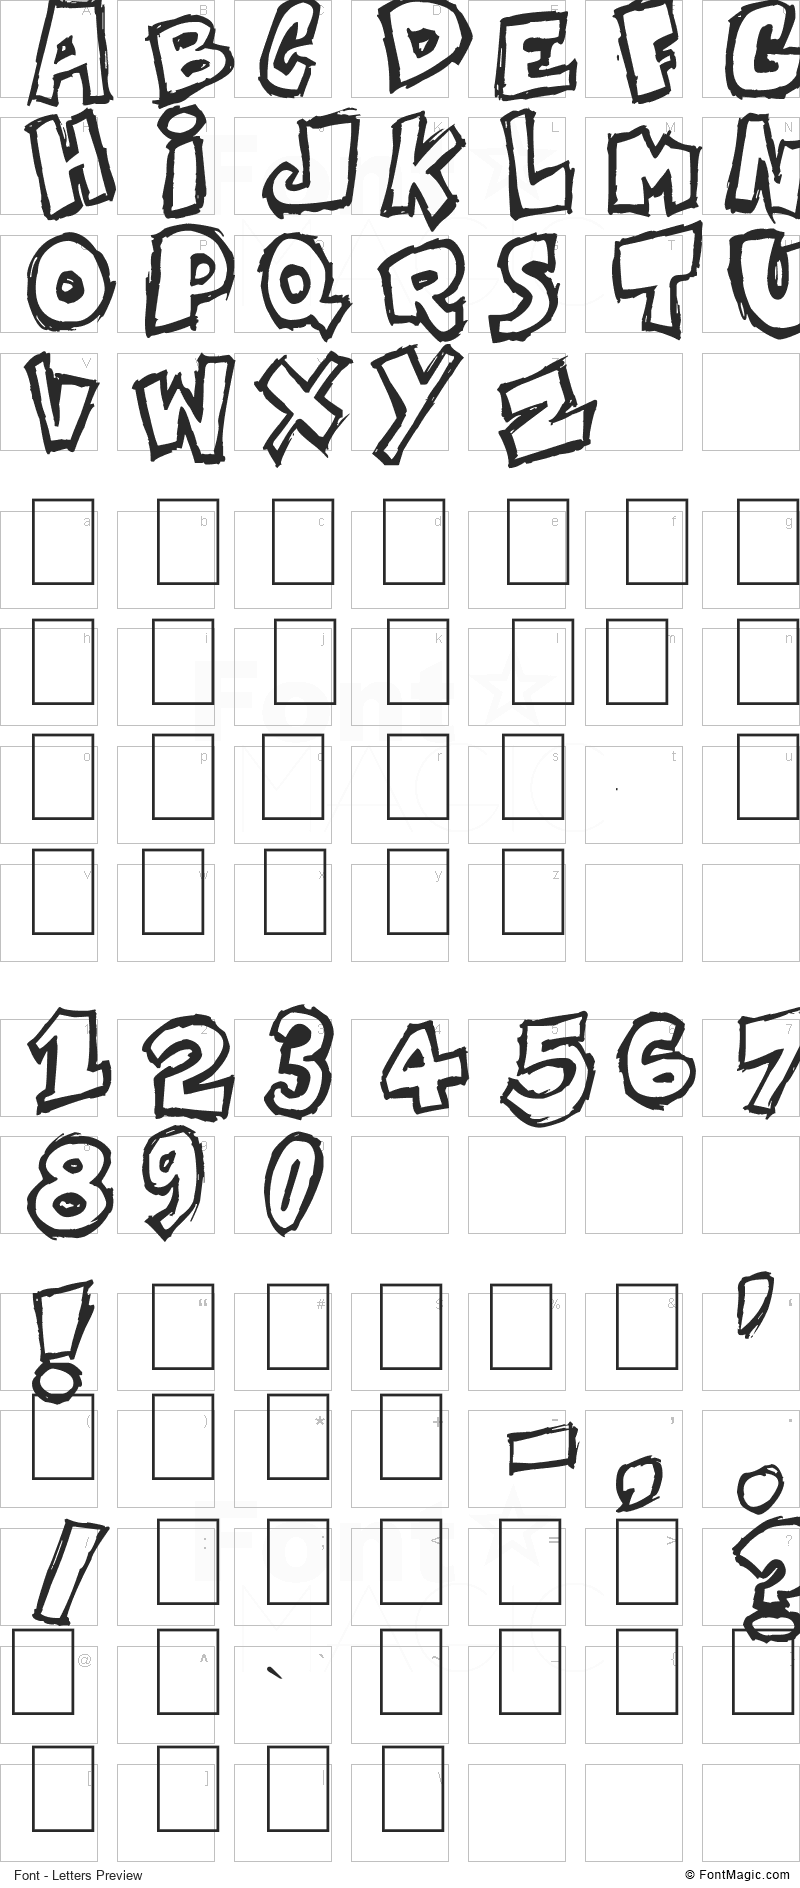 Komikoz Font - All Latters Preview Chart